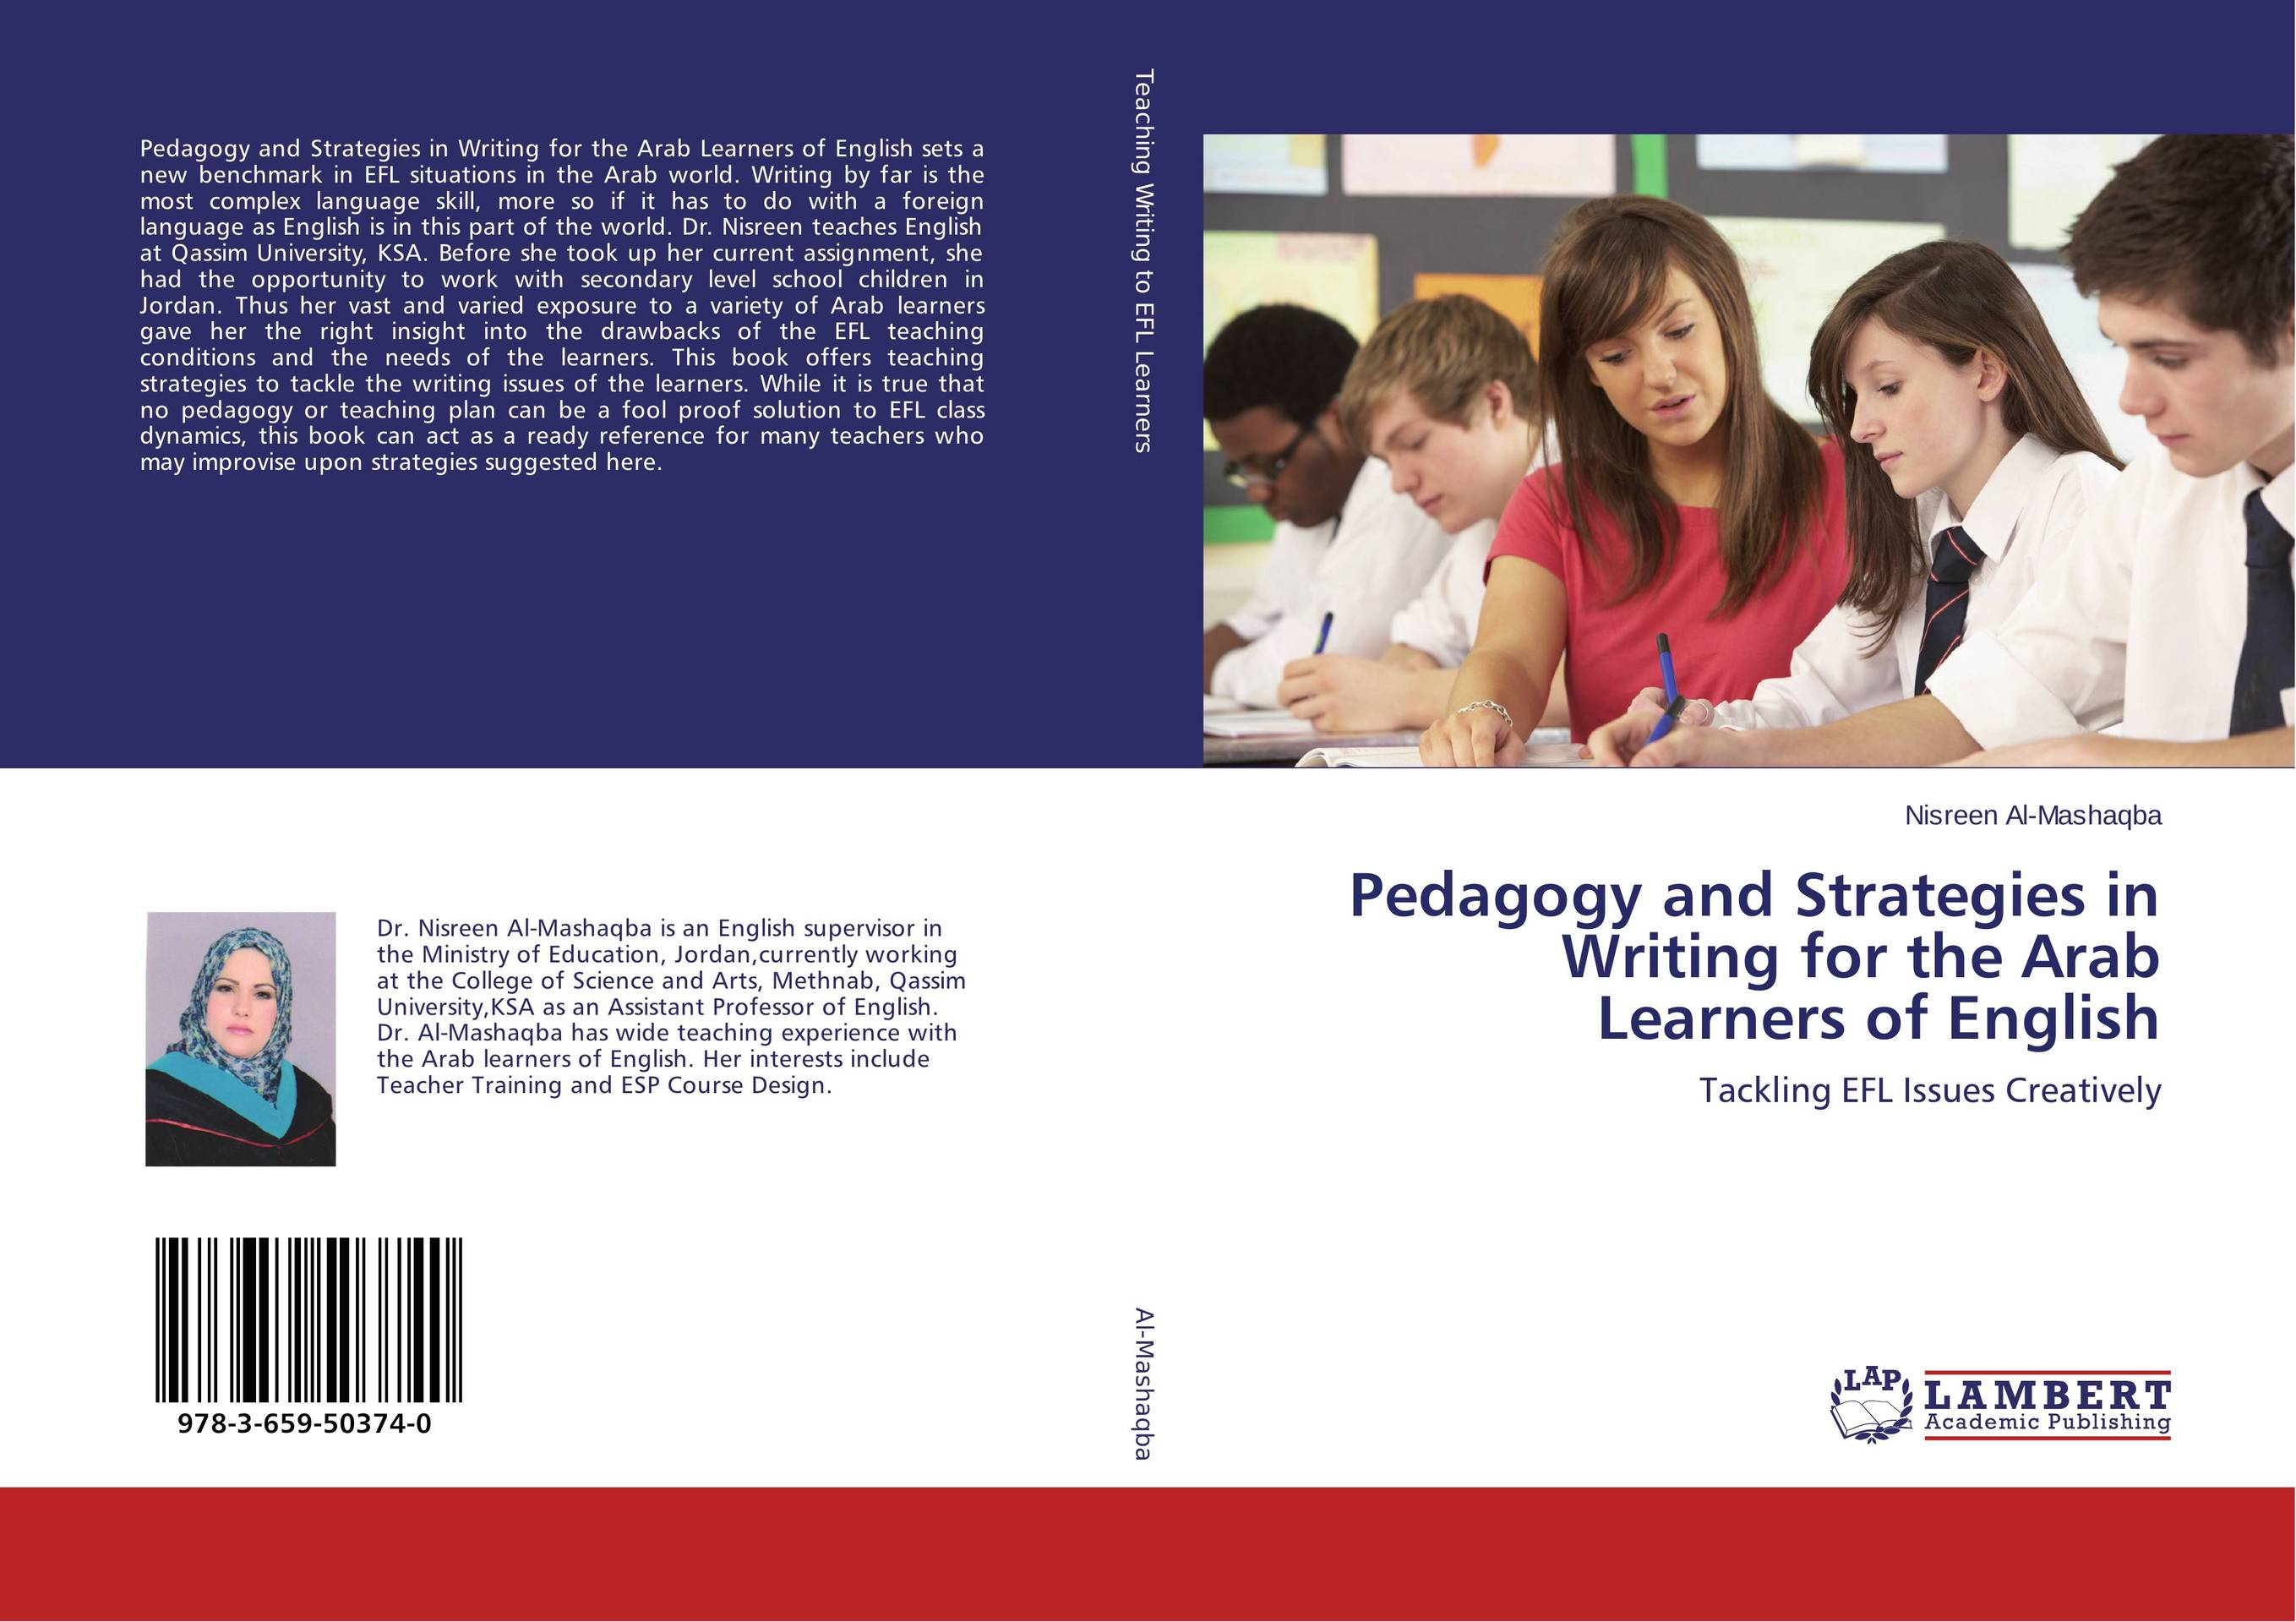 Pedagogy and Strategies in Writing for the Arab Learners of English the use of instructional materials in the pedagogy of english